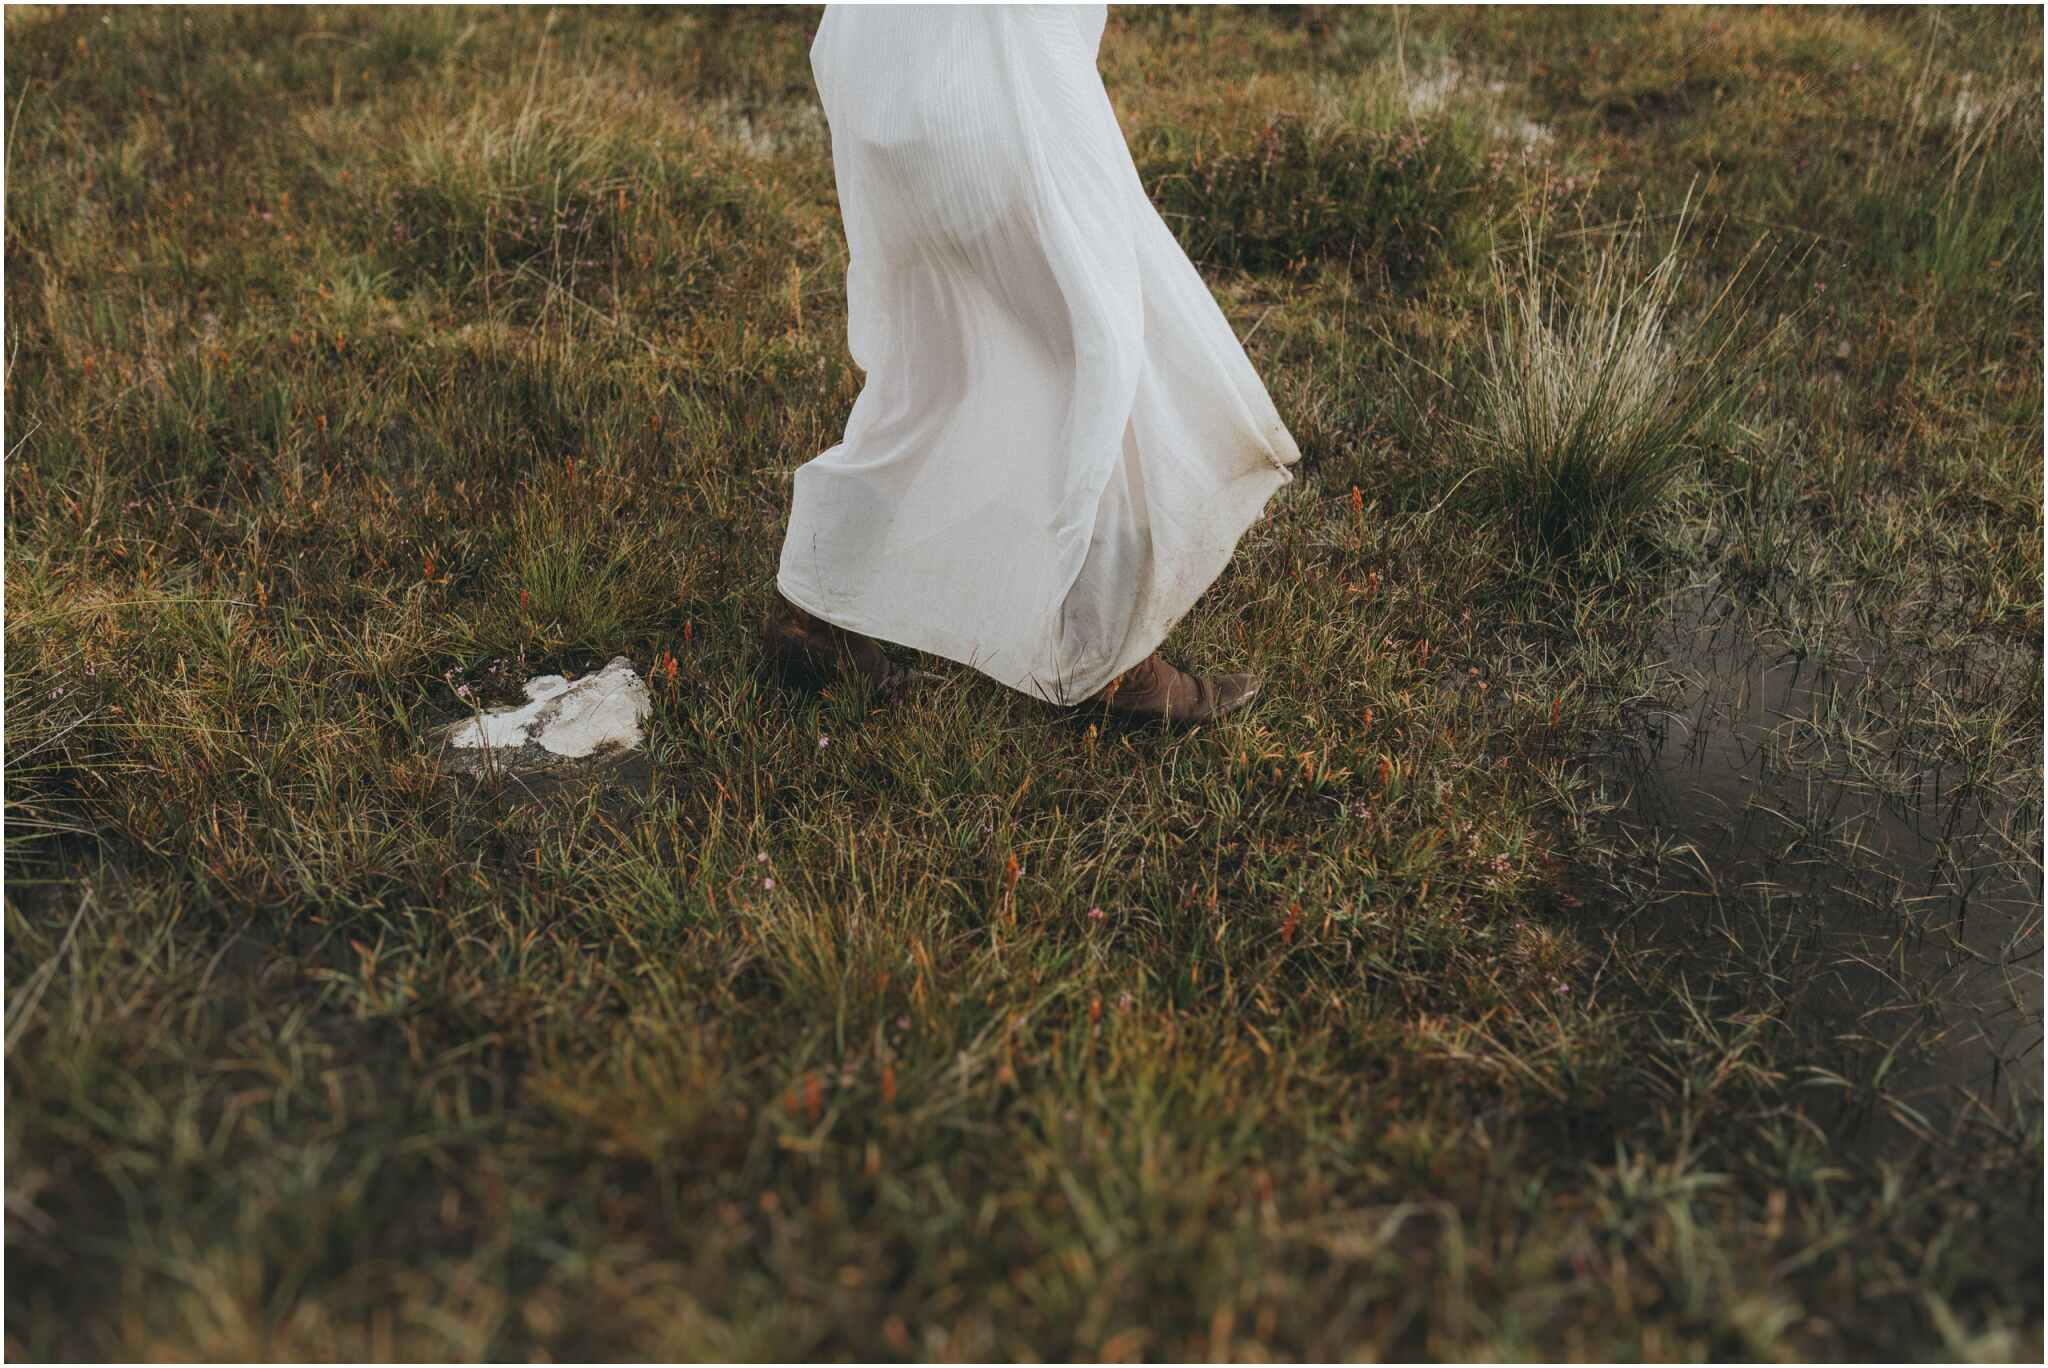 Rachel + David - Hiking Elopement in Muckish Mountain and Poisoned Glen, Donegal 29